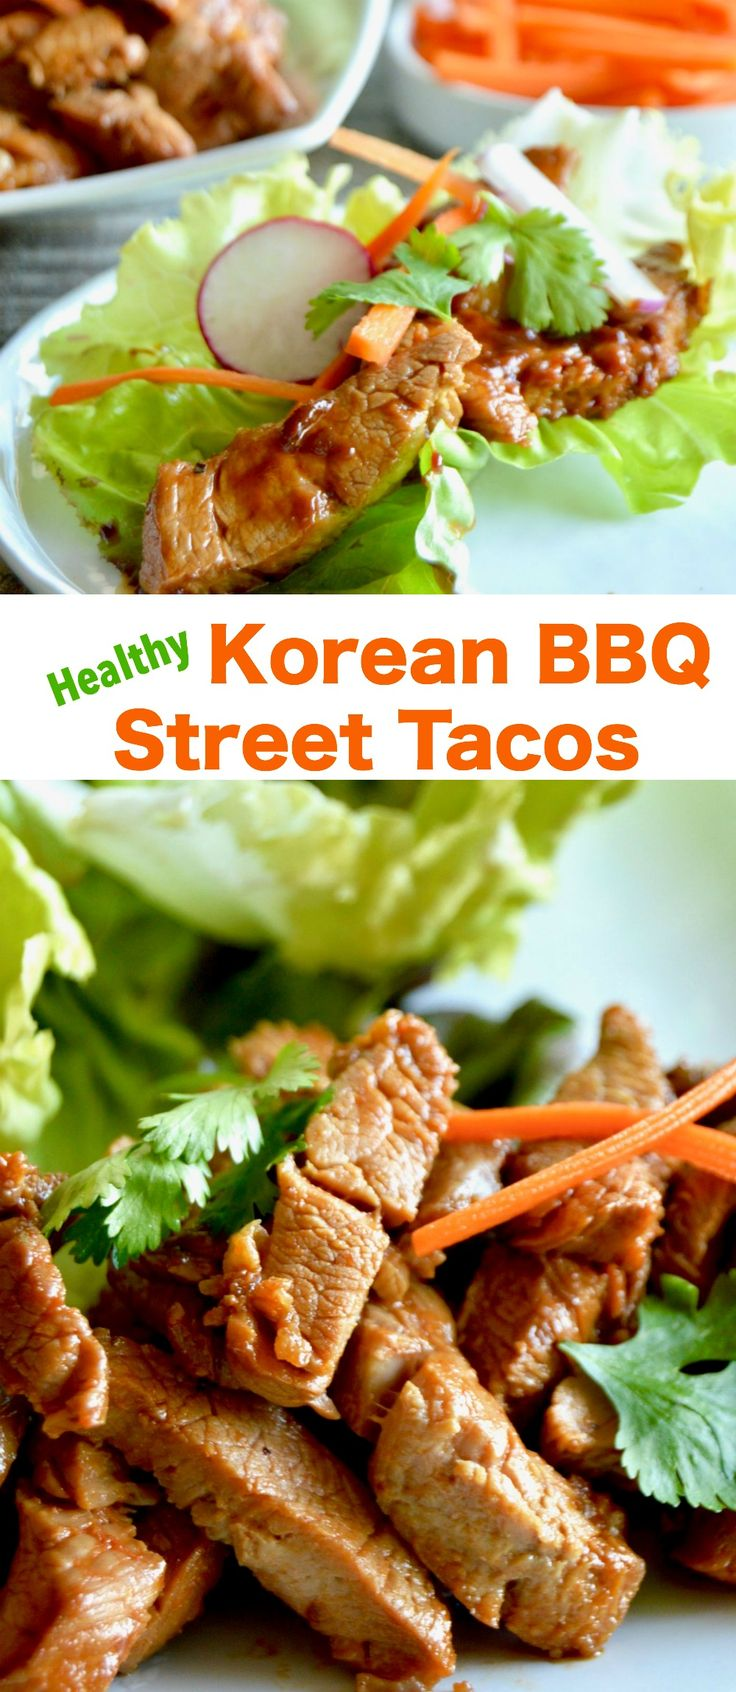 Healthy Korean BBQ Street tacos: a simple homemade seared pork filled taco that's super tender, bursting with flavor and topped with fresh veggies for a healthy taco Tuesday meal! #ad via @westviamidwest